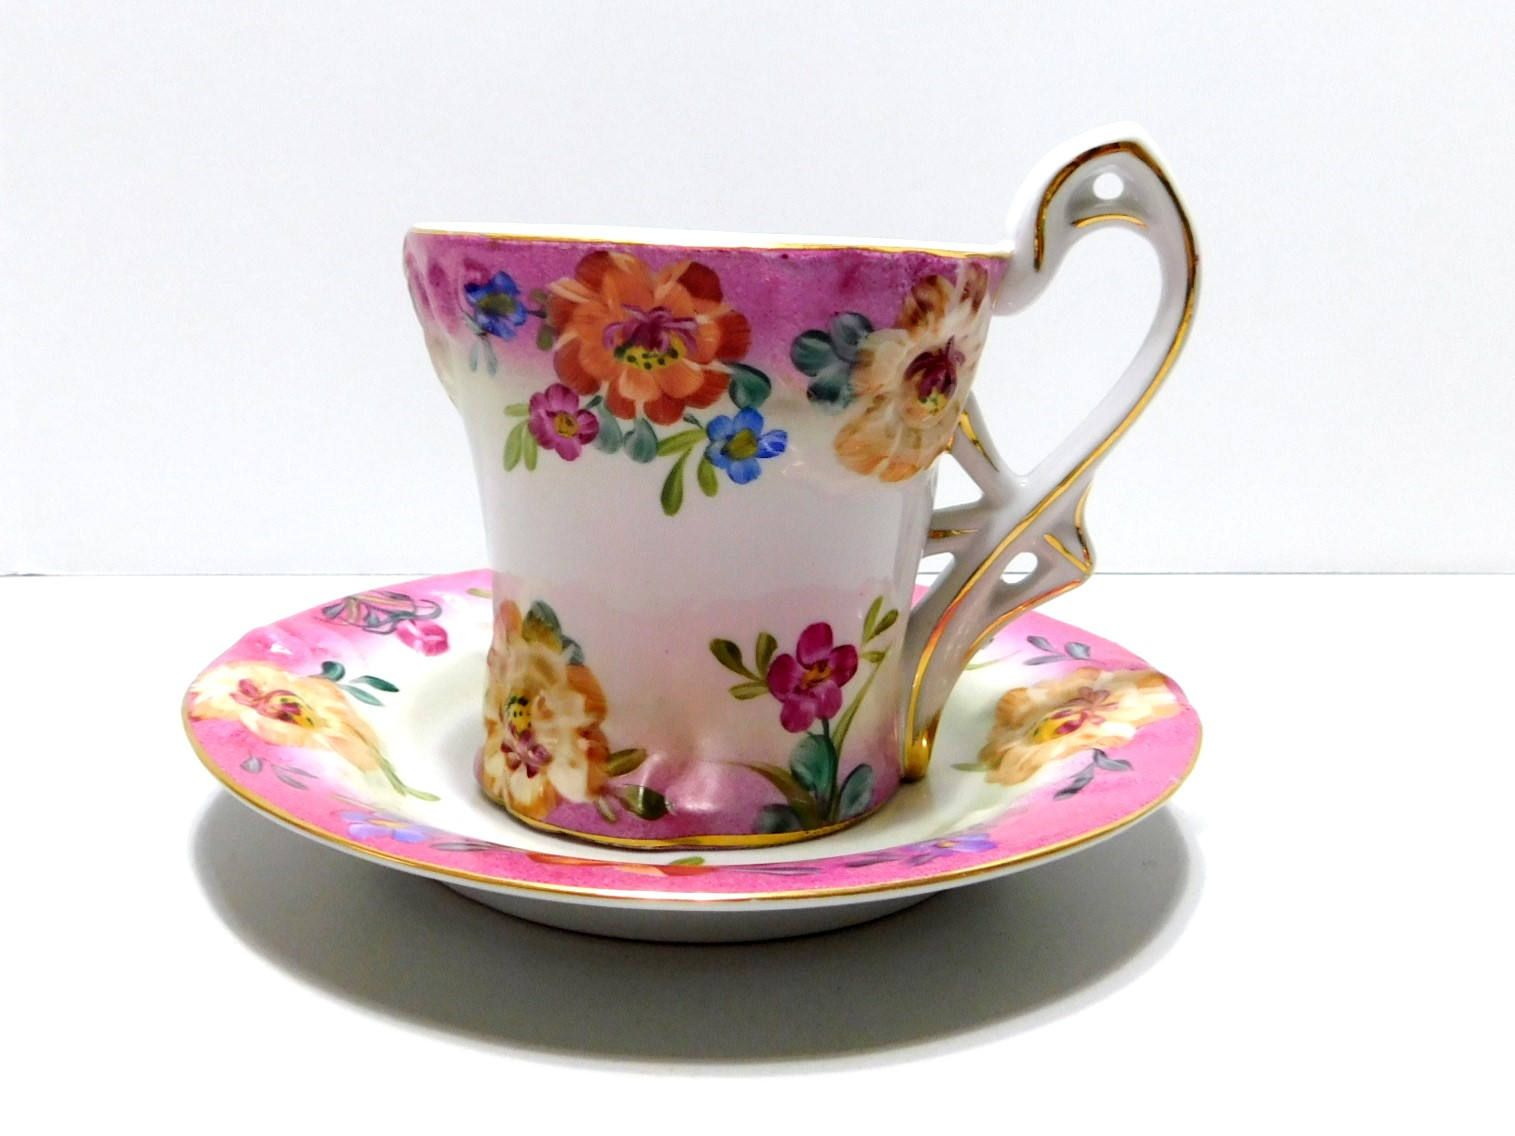 Vintage Limoges China Teacup Saucer Set Raised Floral Pattern Decorative Only Gold Trim Pink White By Eclecticfaves On Tea Cups Tea Cup Saucer Tea Cups Vintage